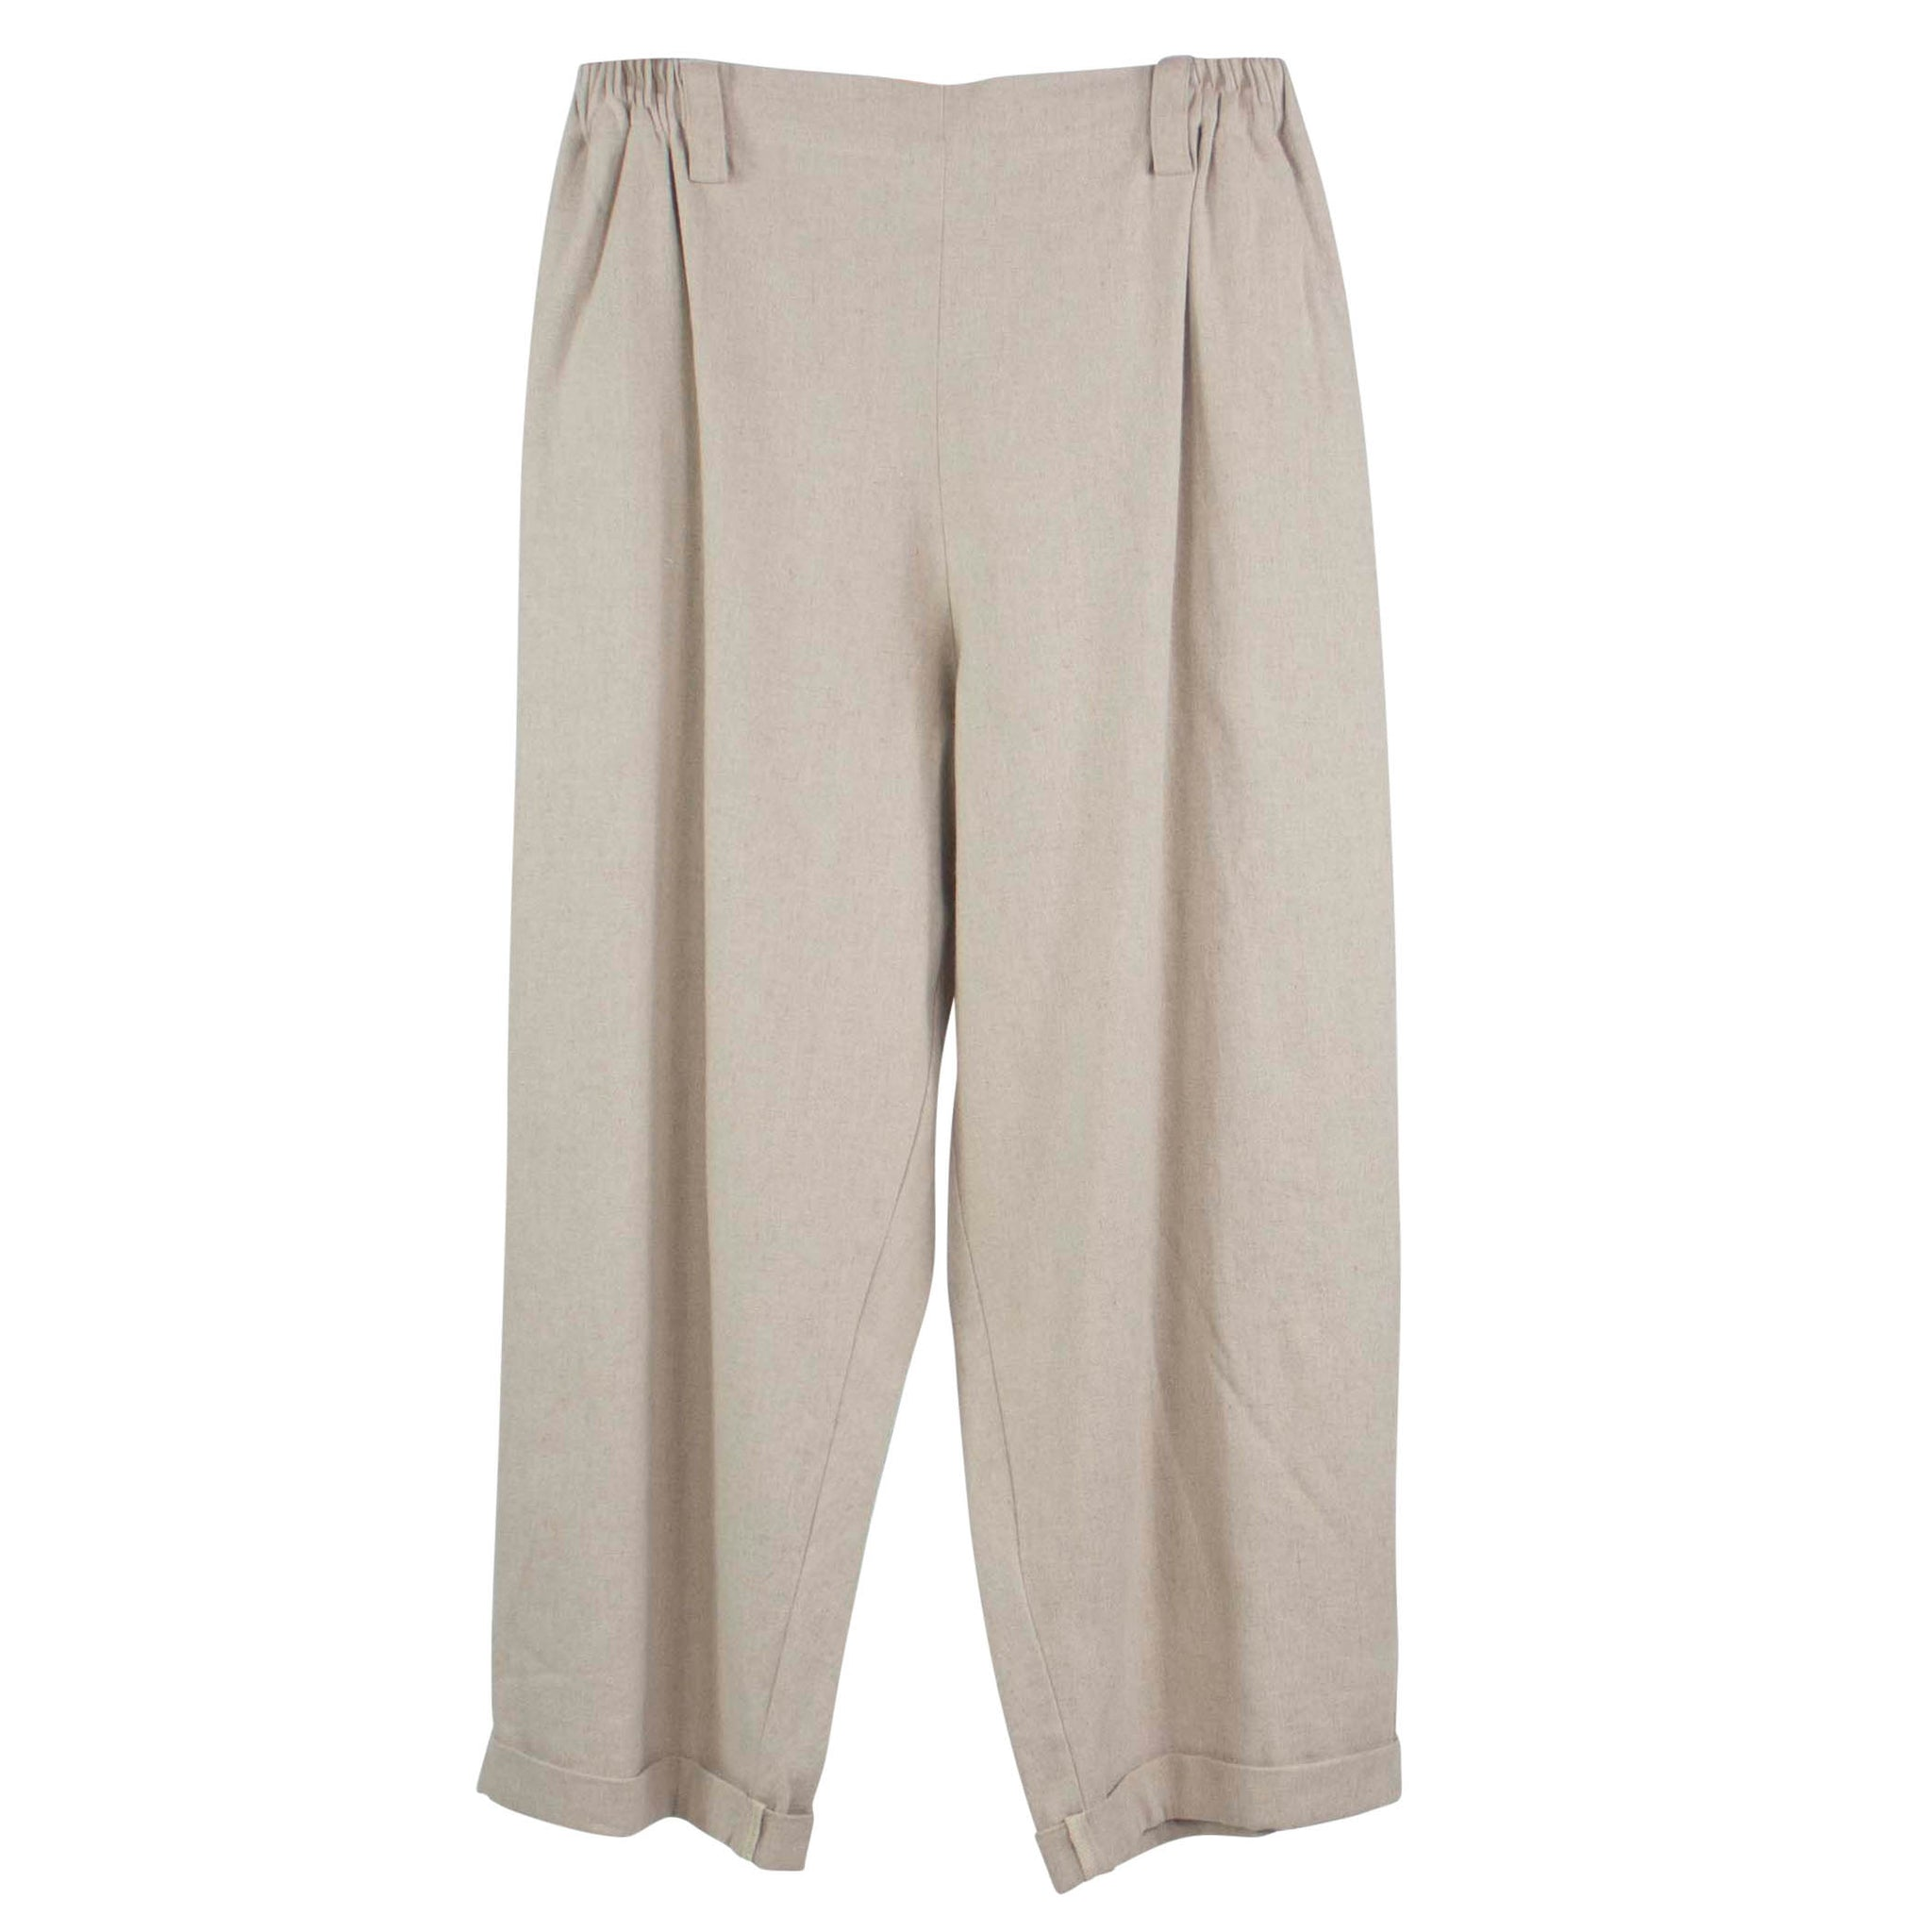 Moyuru Loose Fit Cuffed Pant